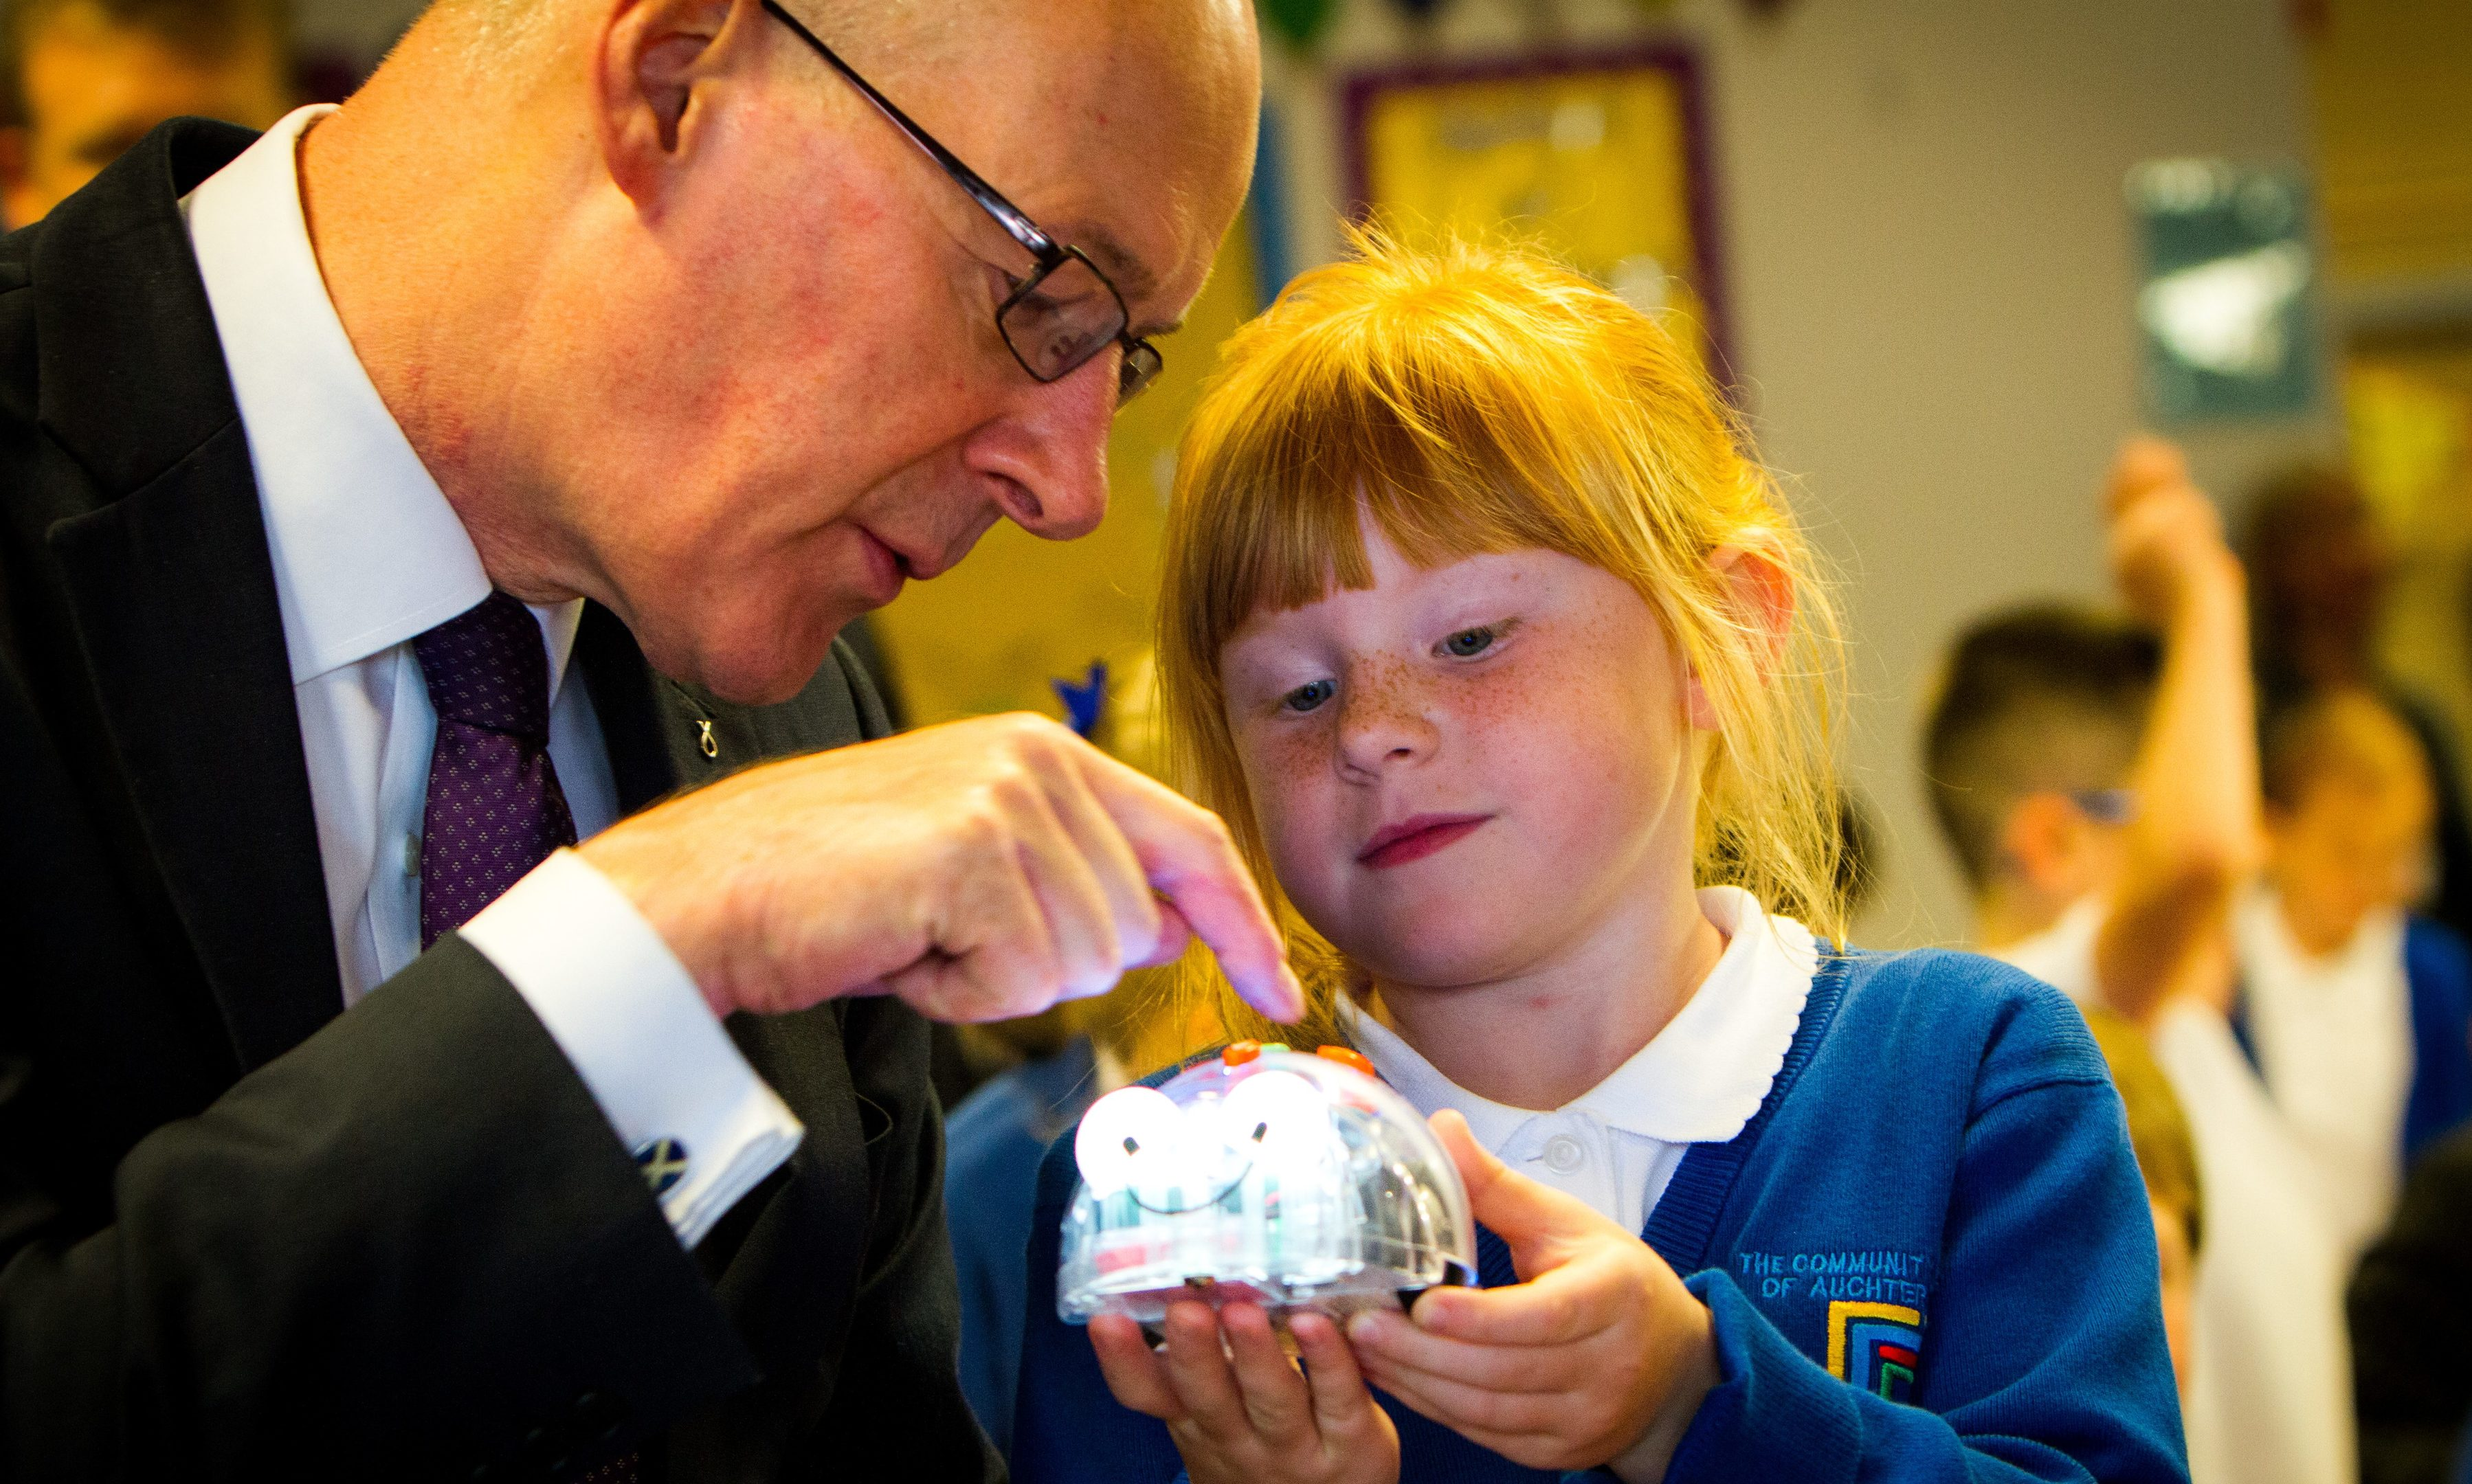 Deputy First Minister John Swinney at the Community School of Auchterarder to launch new national computing programme.